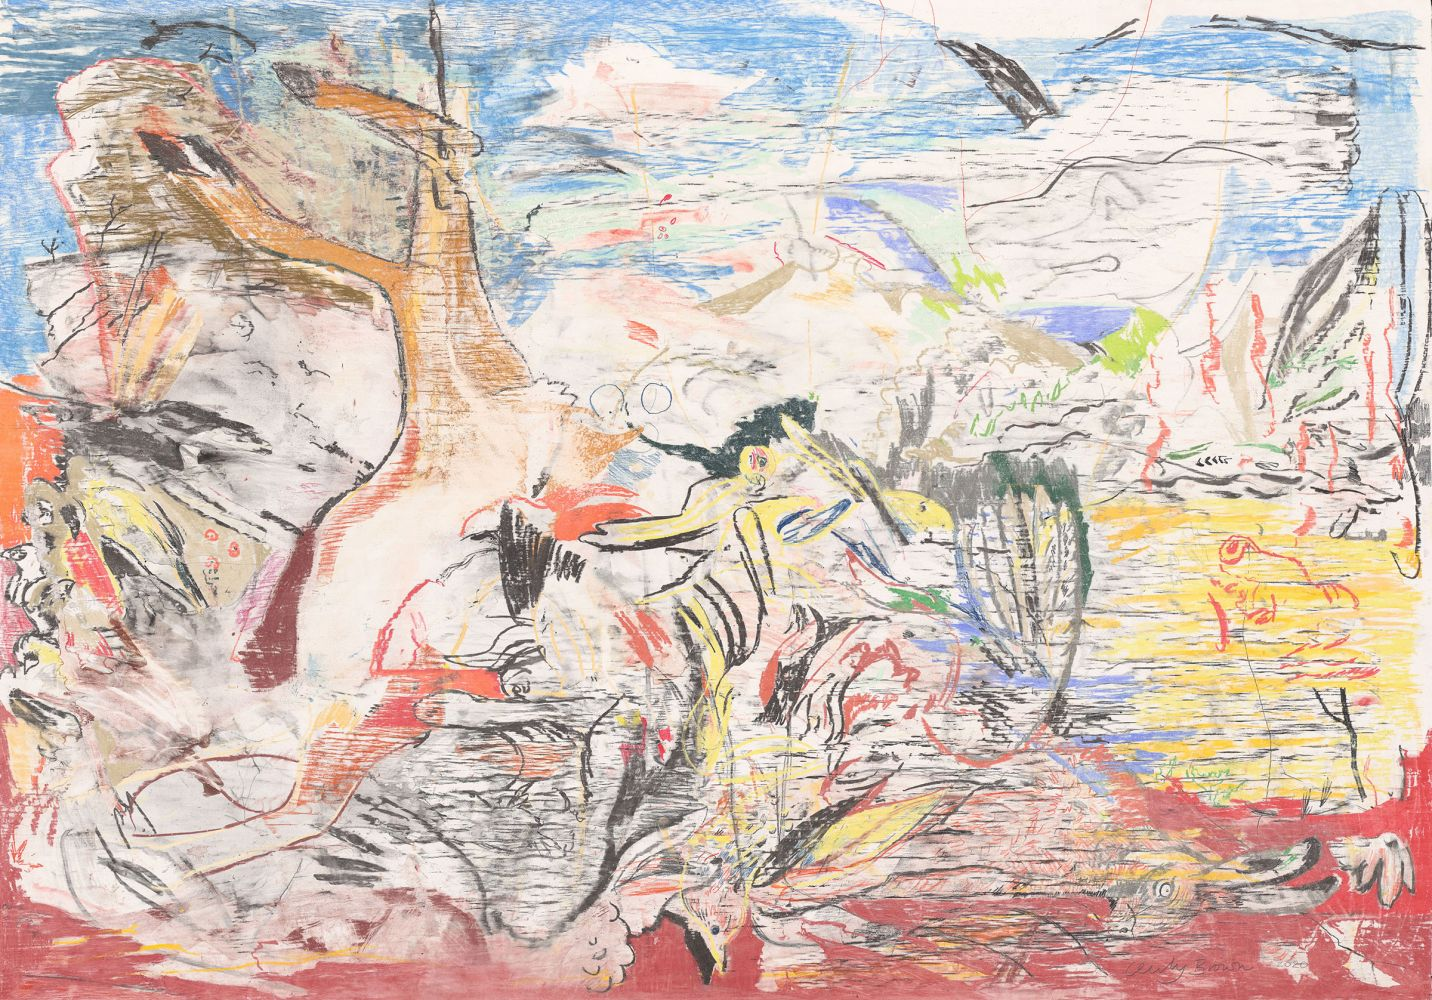 Cecily Brown, Untitled (Still Life in a Landscape), 2020